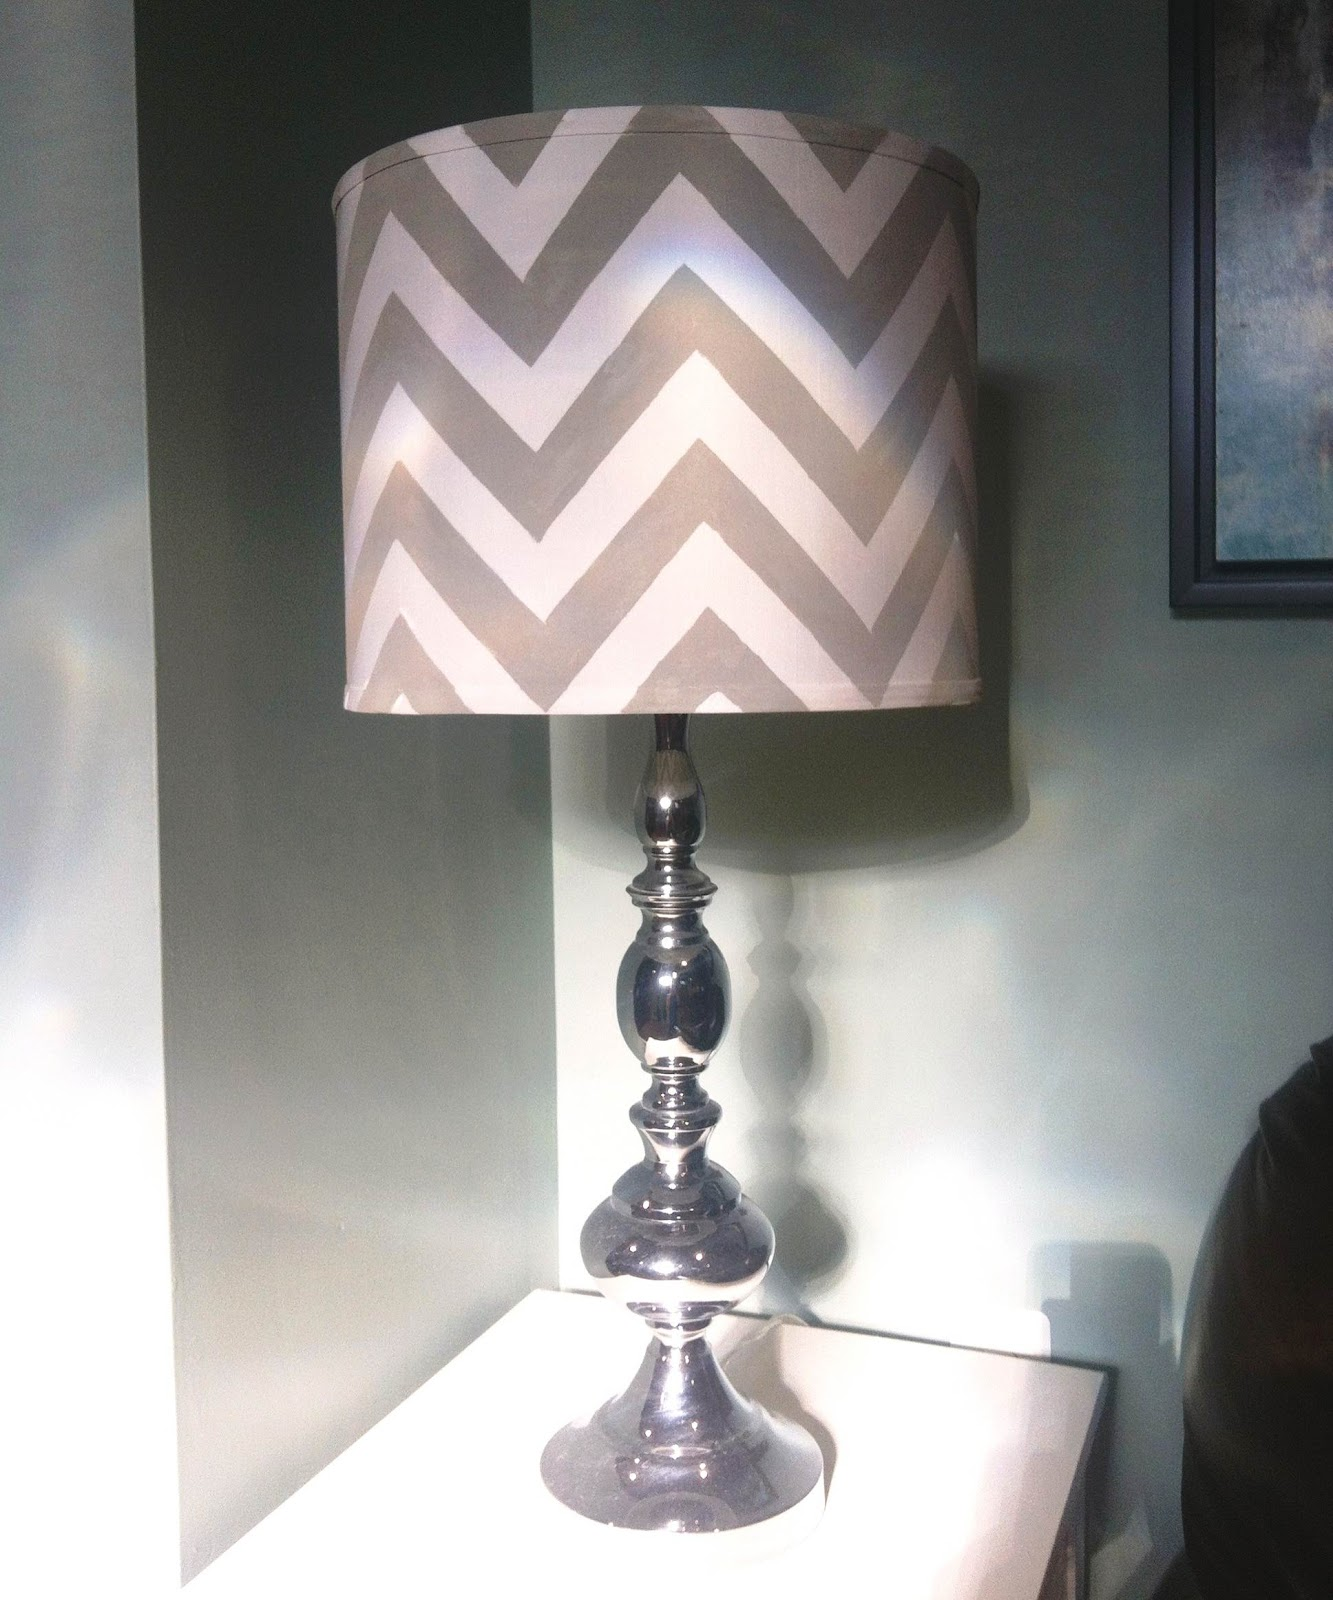 Diy chevron lamp shade six 2 eleven aloadofball Choice Image